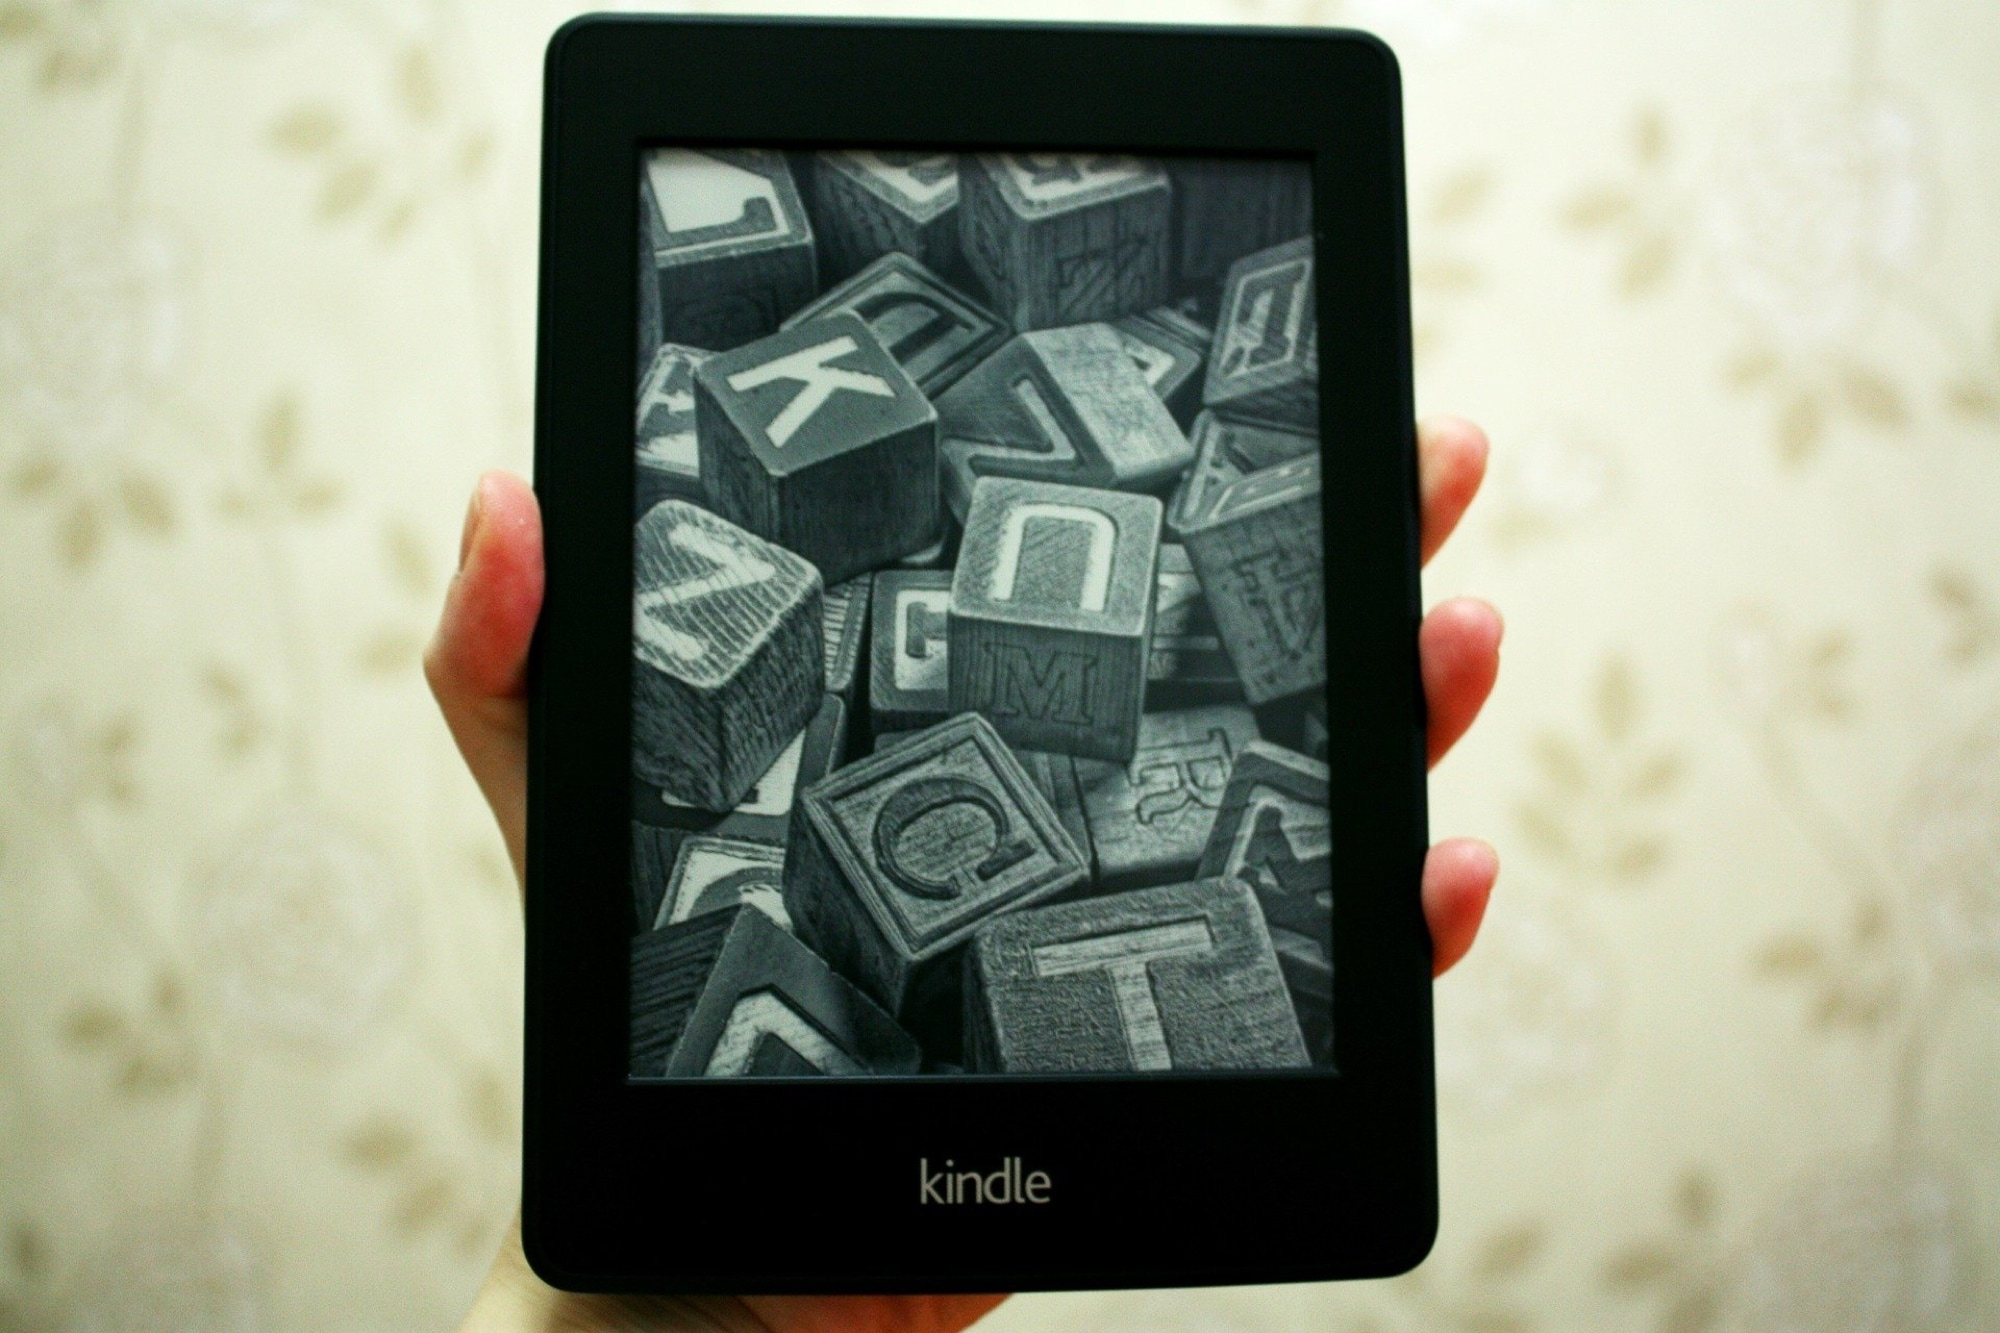 Holding a Kindle Paperwhite